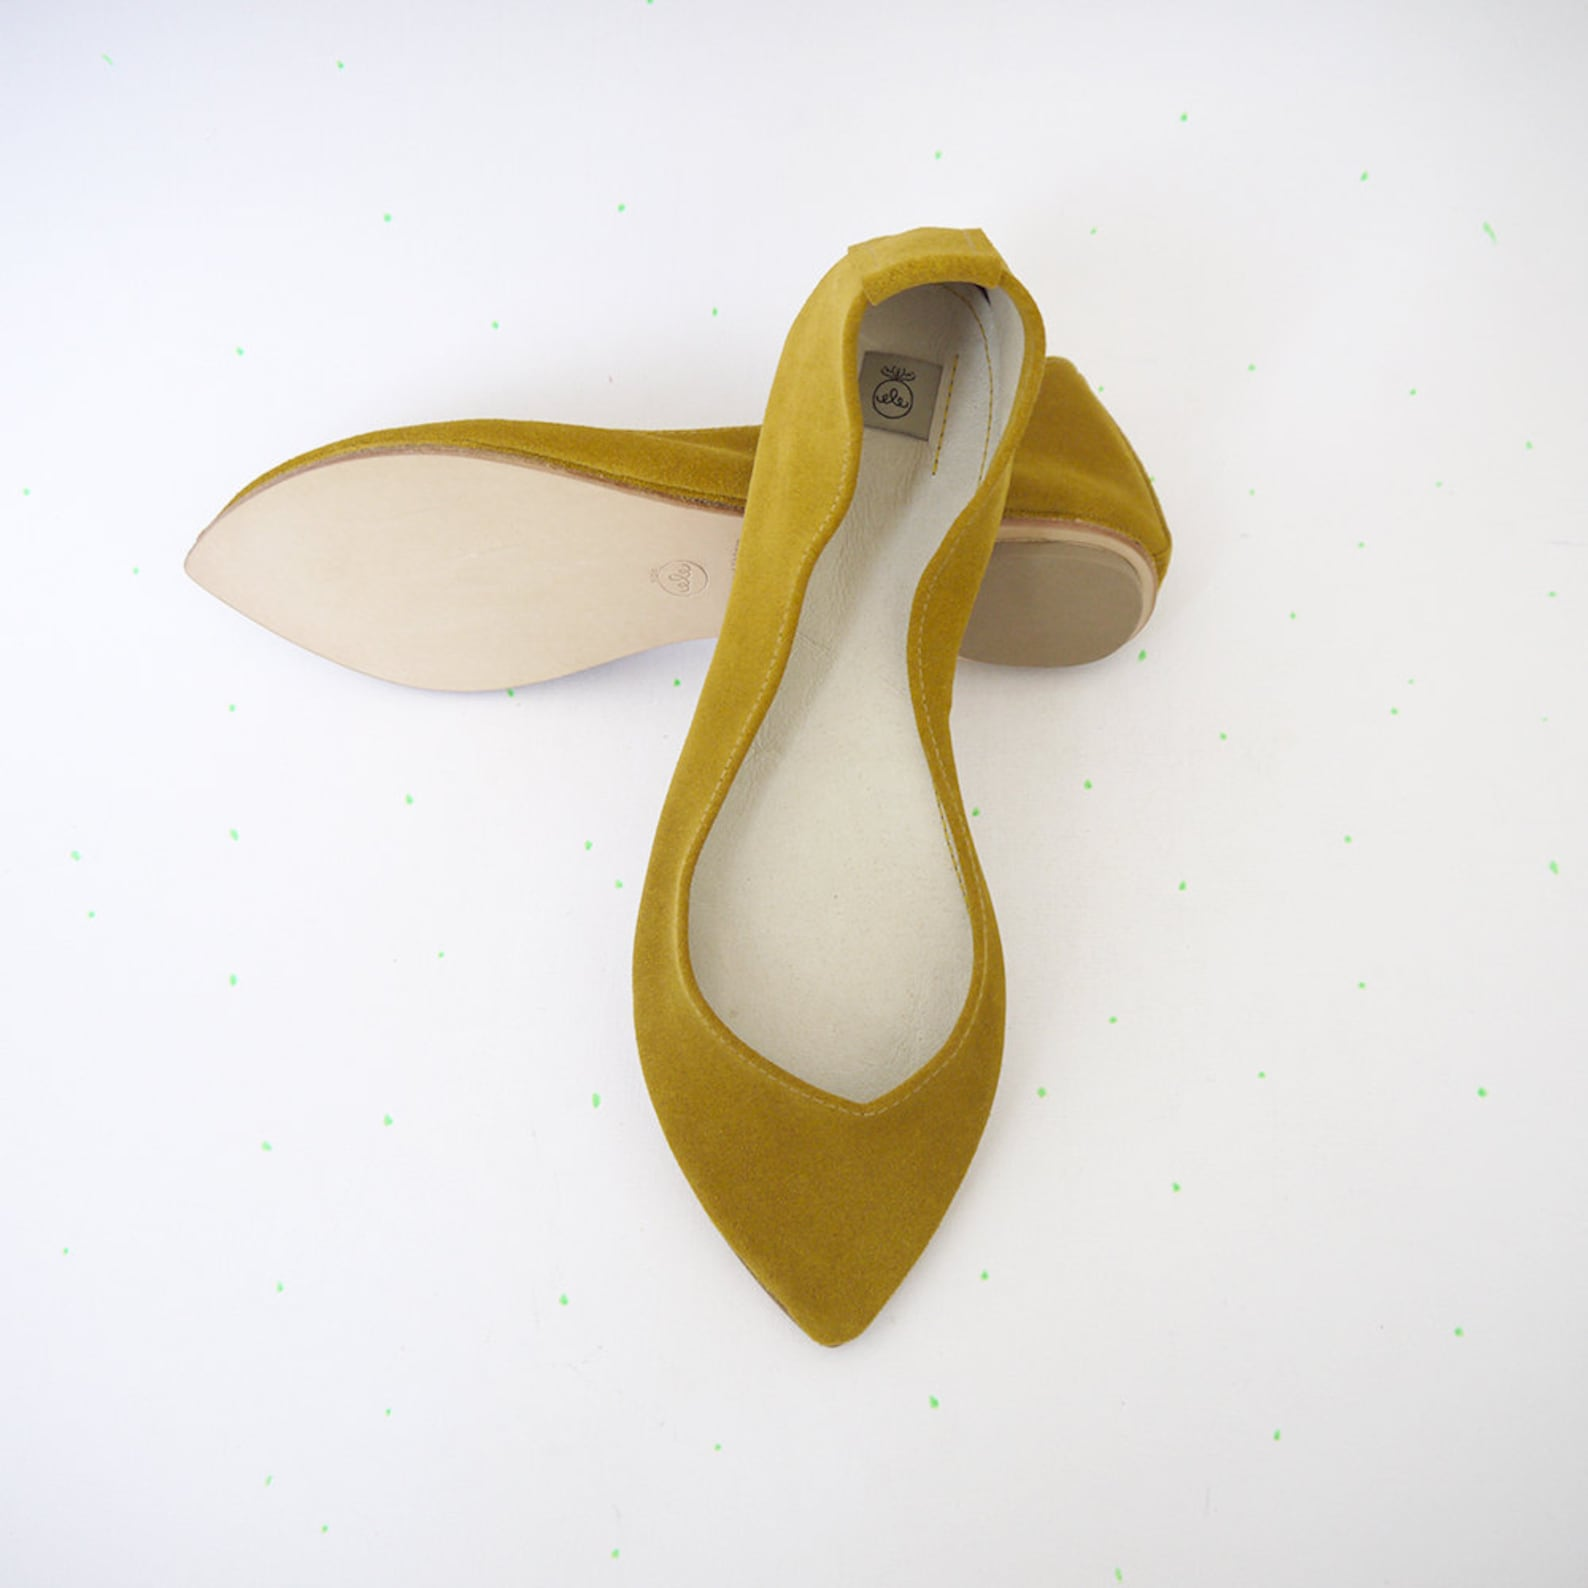 ballet flats shoes. pointy shoes. pointed ballet flats. yellow ballet flats. leather slip on. pointed ballerinas. bridal shoes.